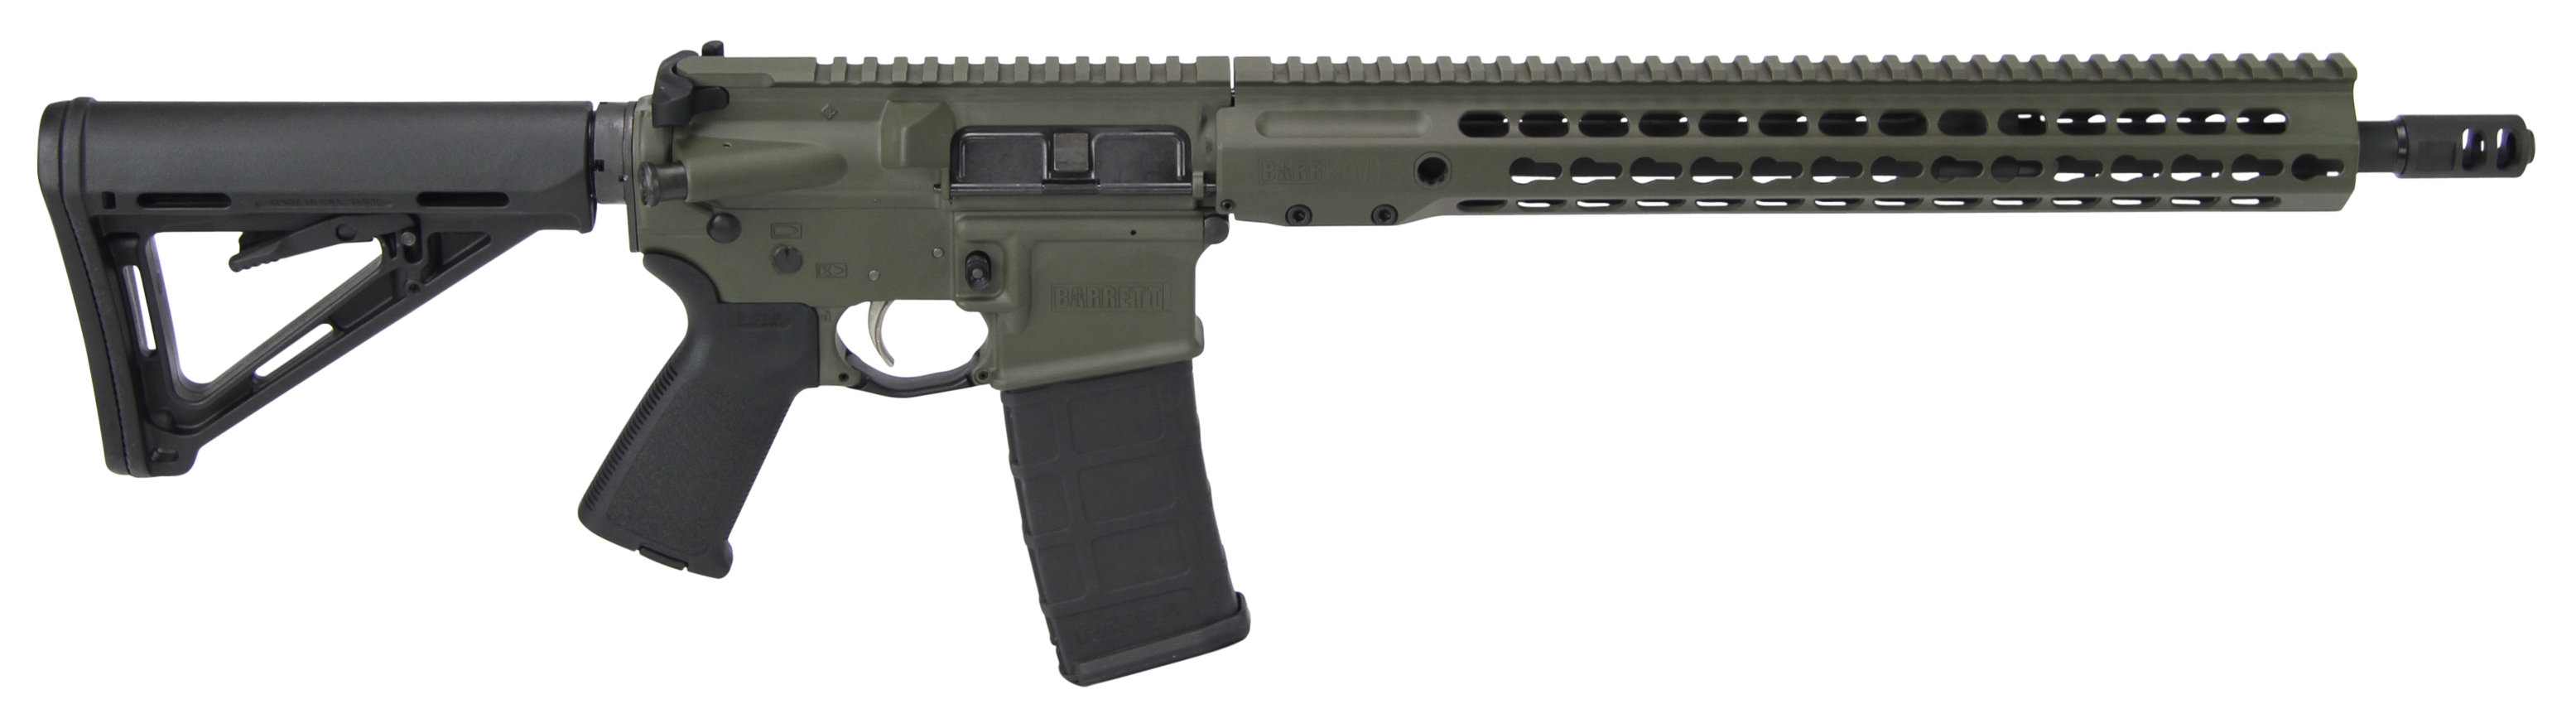 Barrett 15396 REC7 DI Gen II Semi-Automatic 223 Remington/5.56 NATO 16